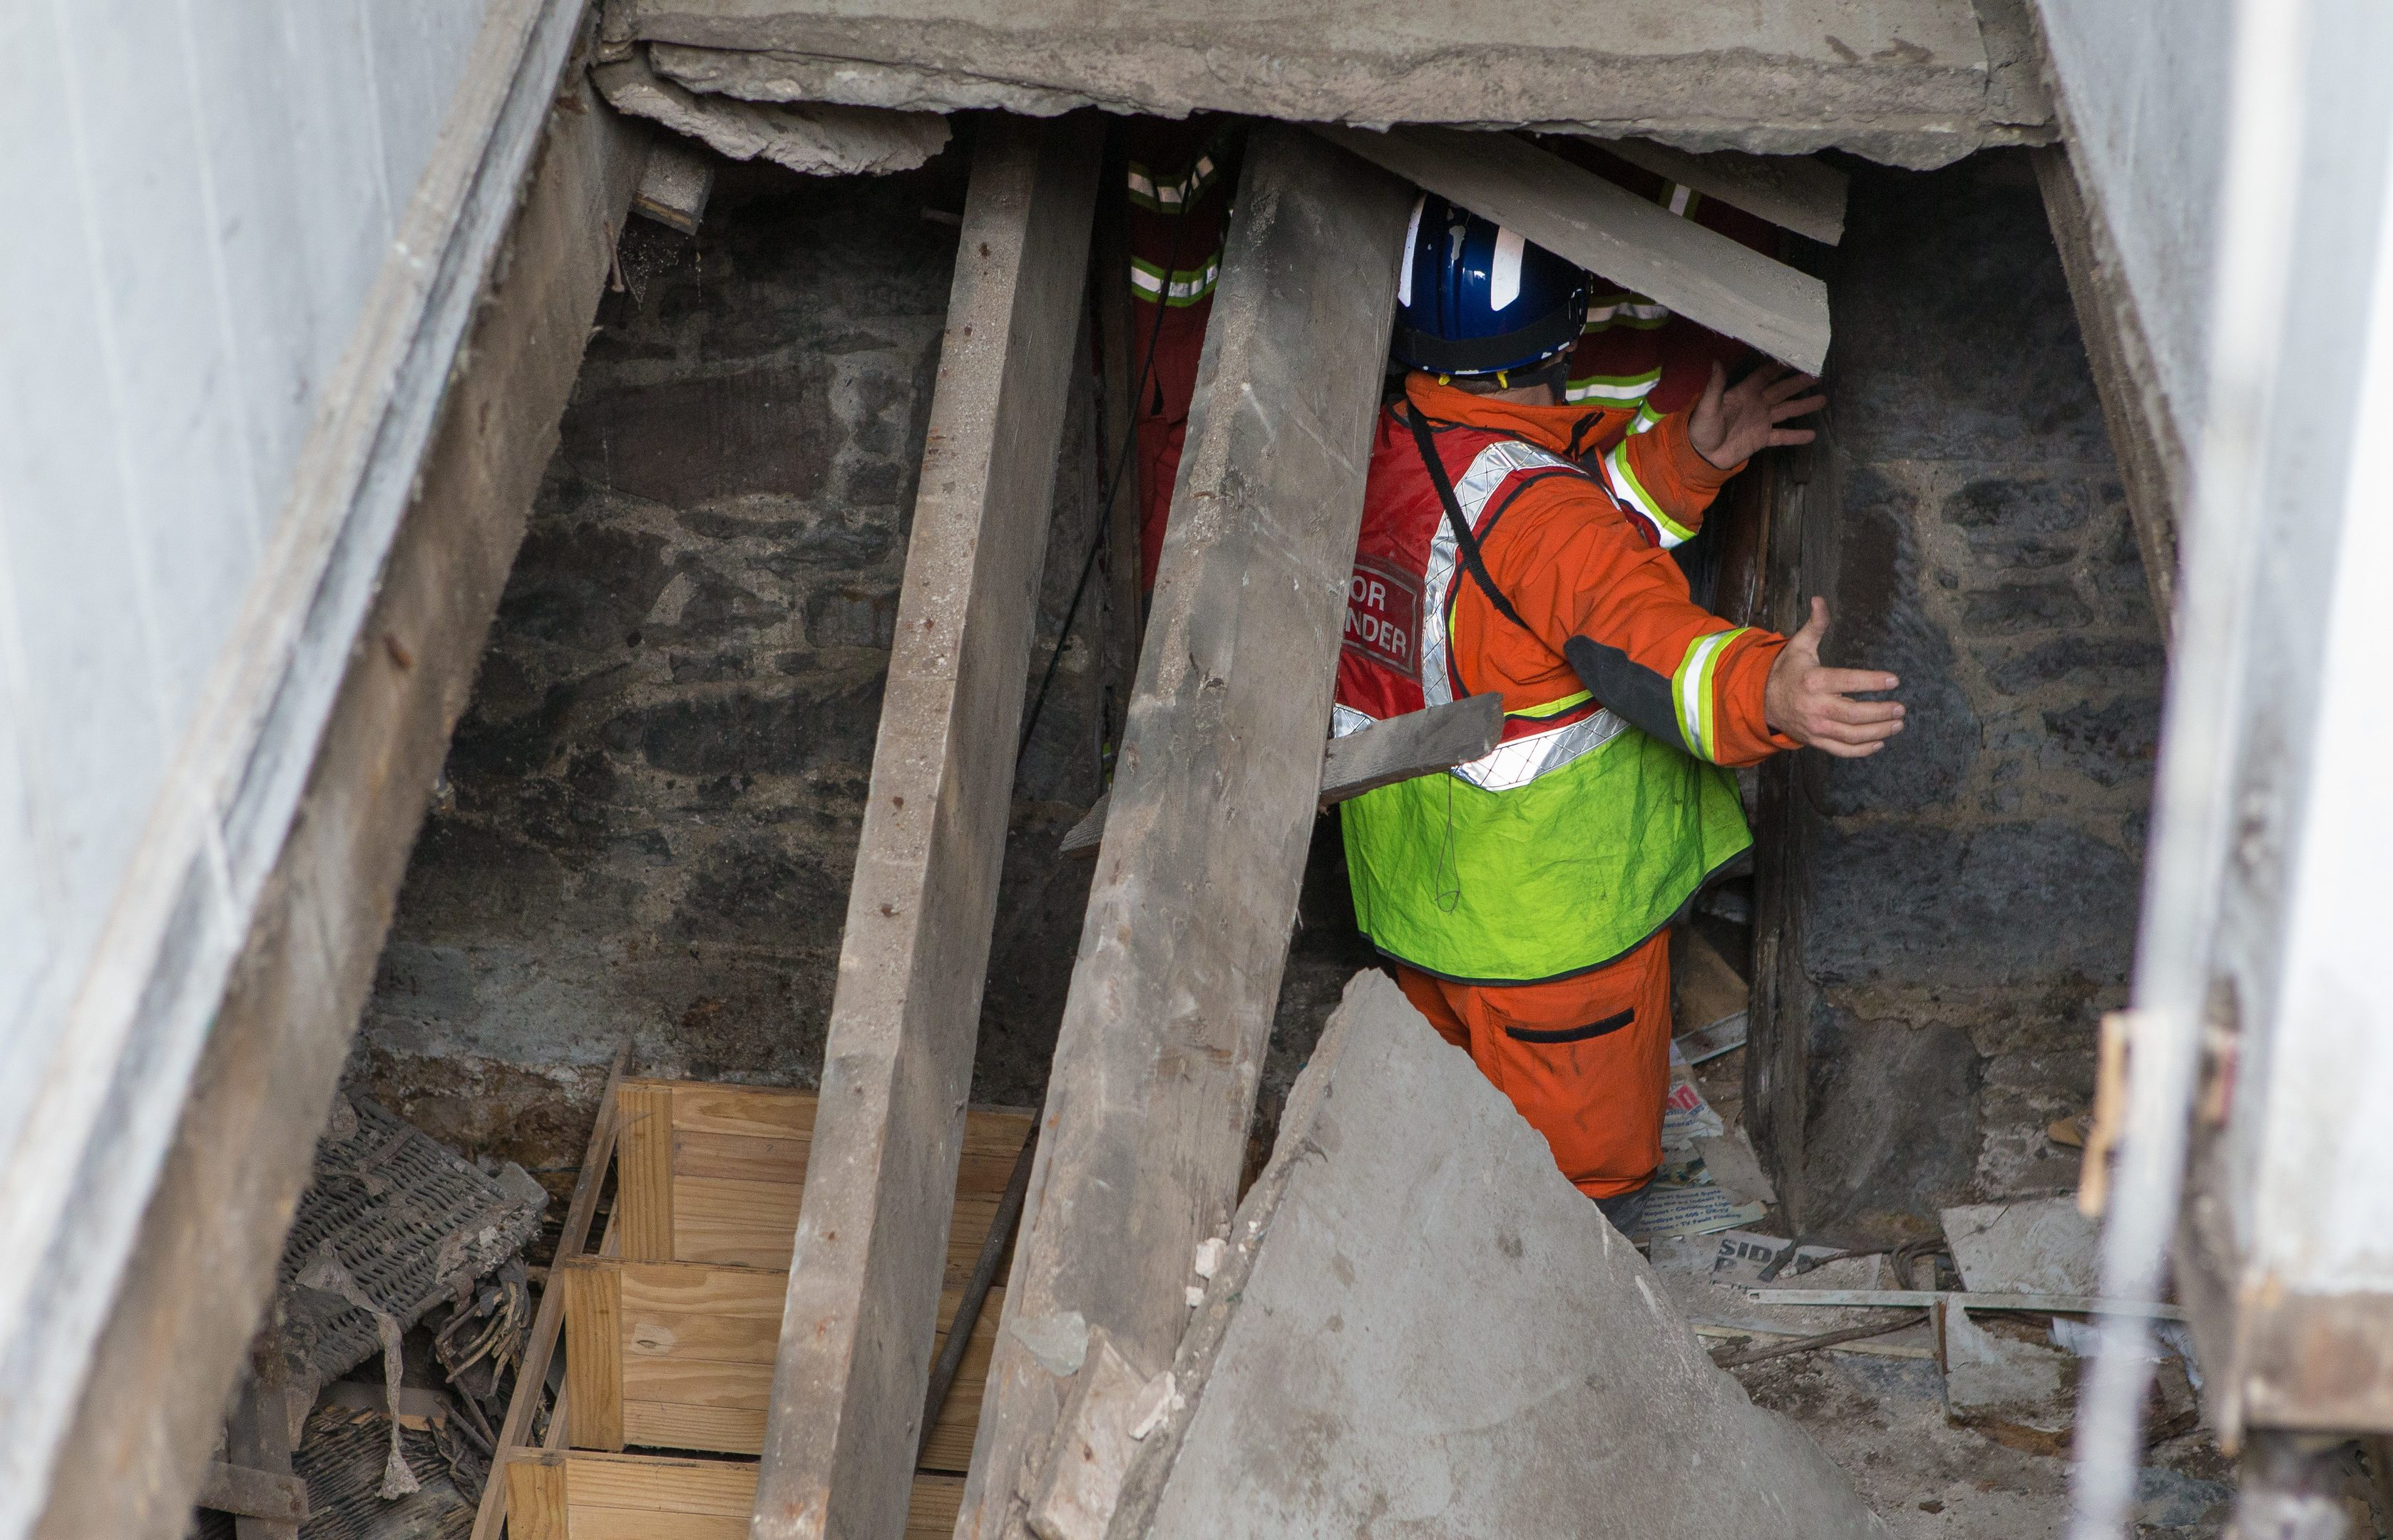 Emergency services examining the collapsed stairwell.